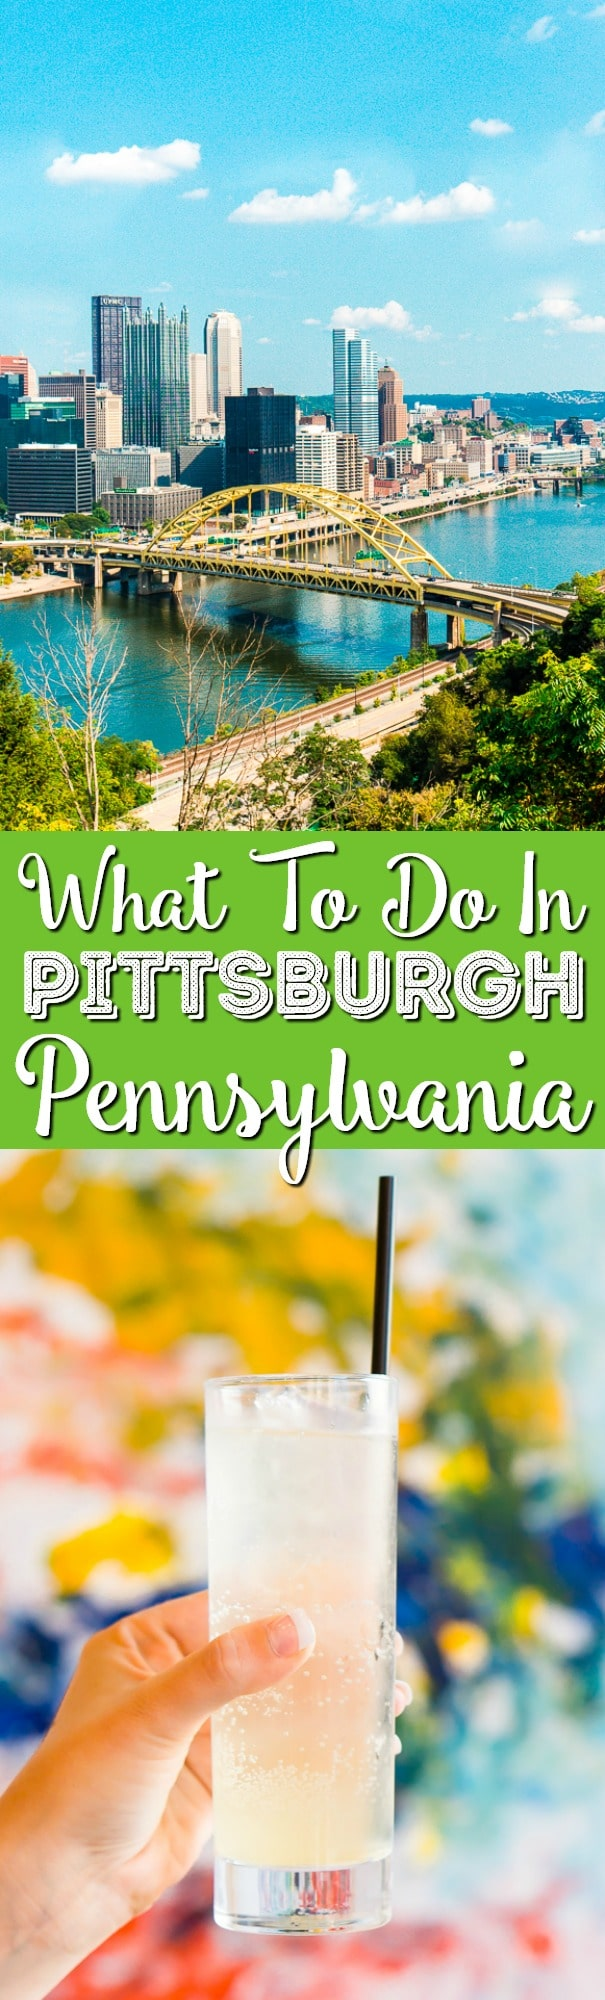 Heading to Pittsburgh, Pennsylvania and not sure what to do? Here's a great itinerary of what to do, see, and eat in Steel City in 48 hours! via @sugarandsoulco